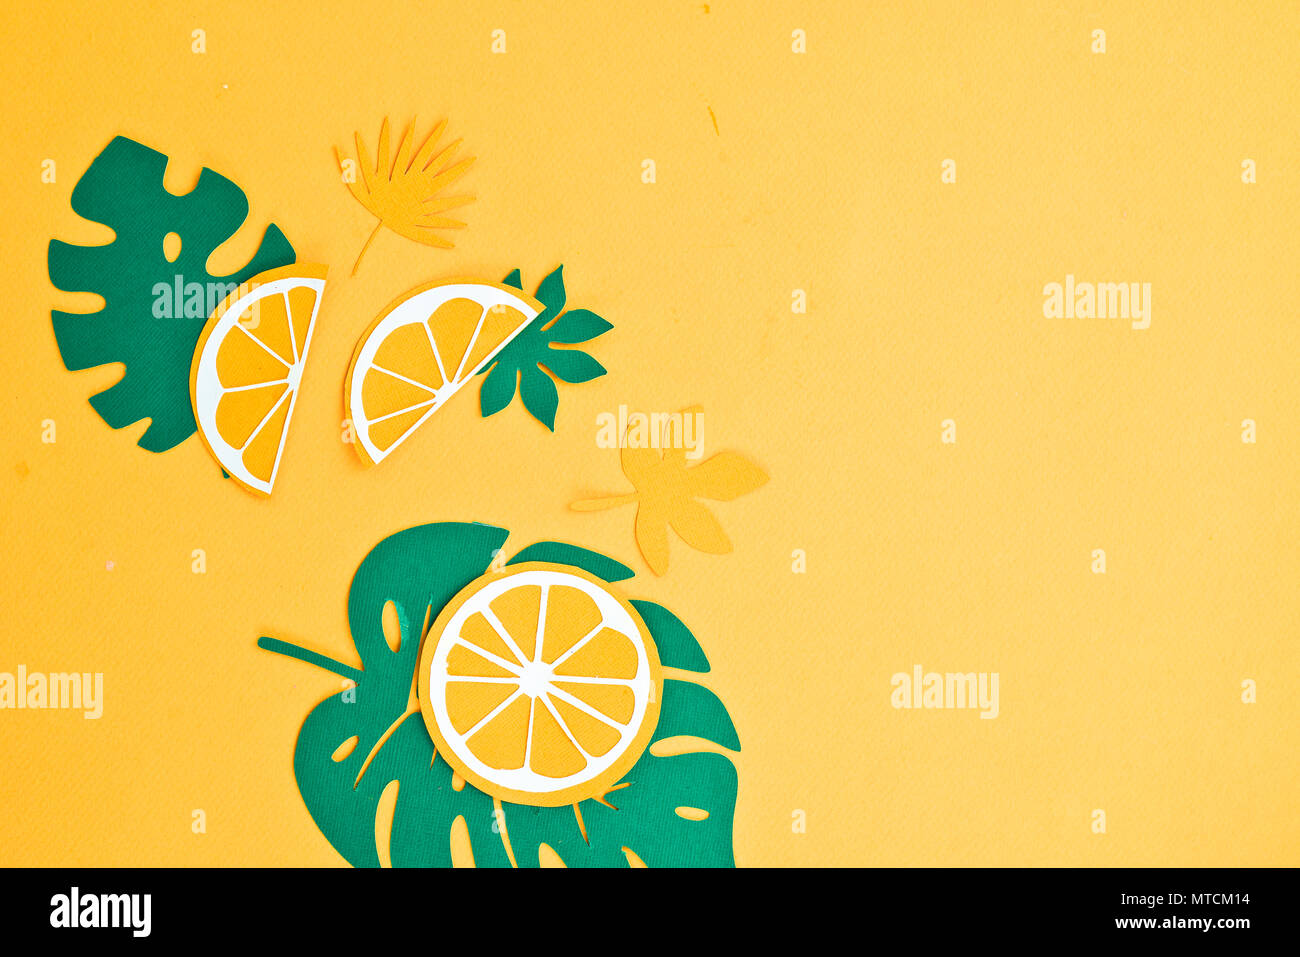 header with lemon slices and tropical leaves pattern on a bright